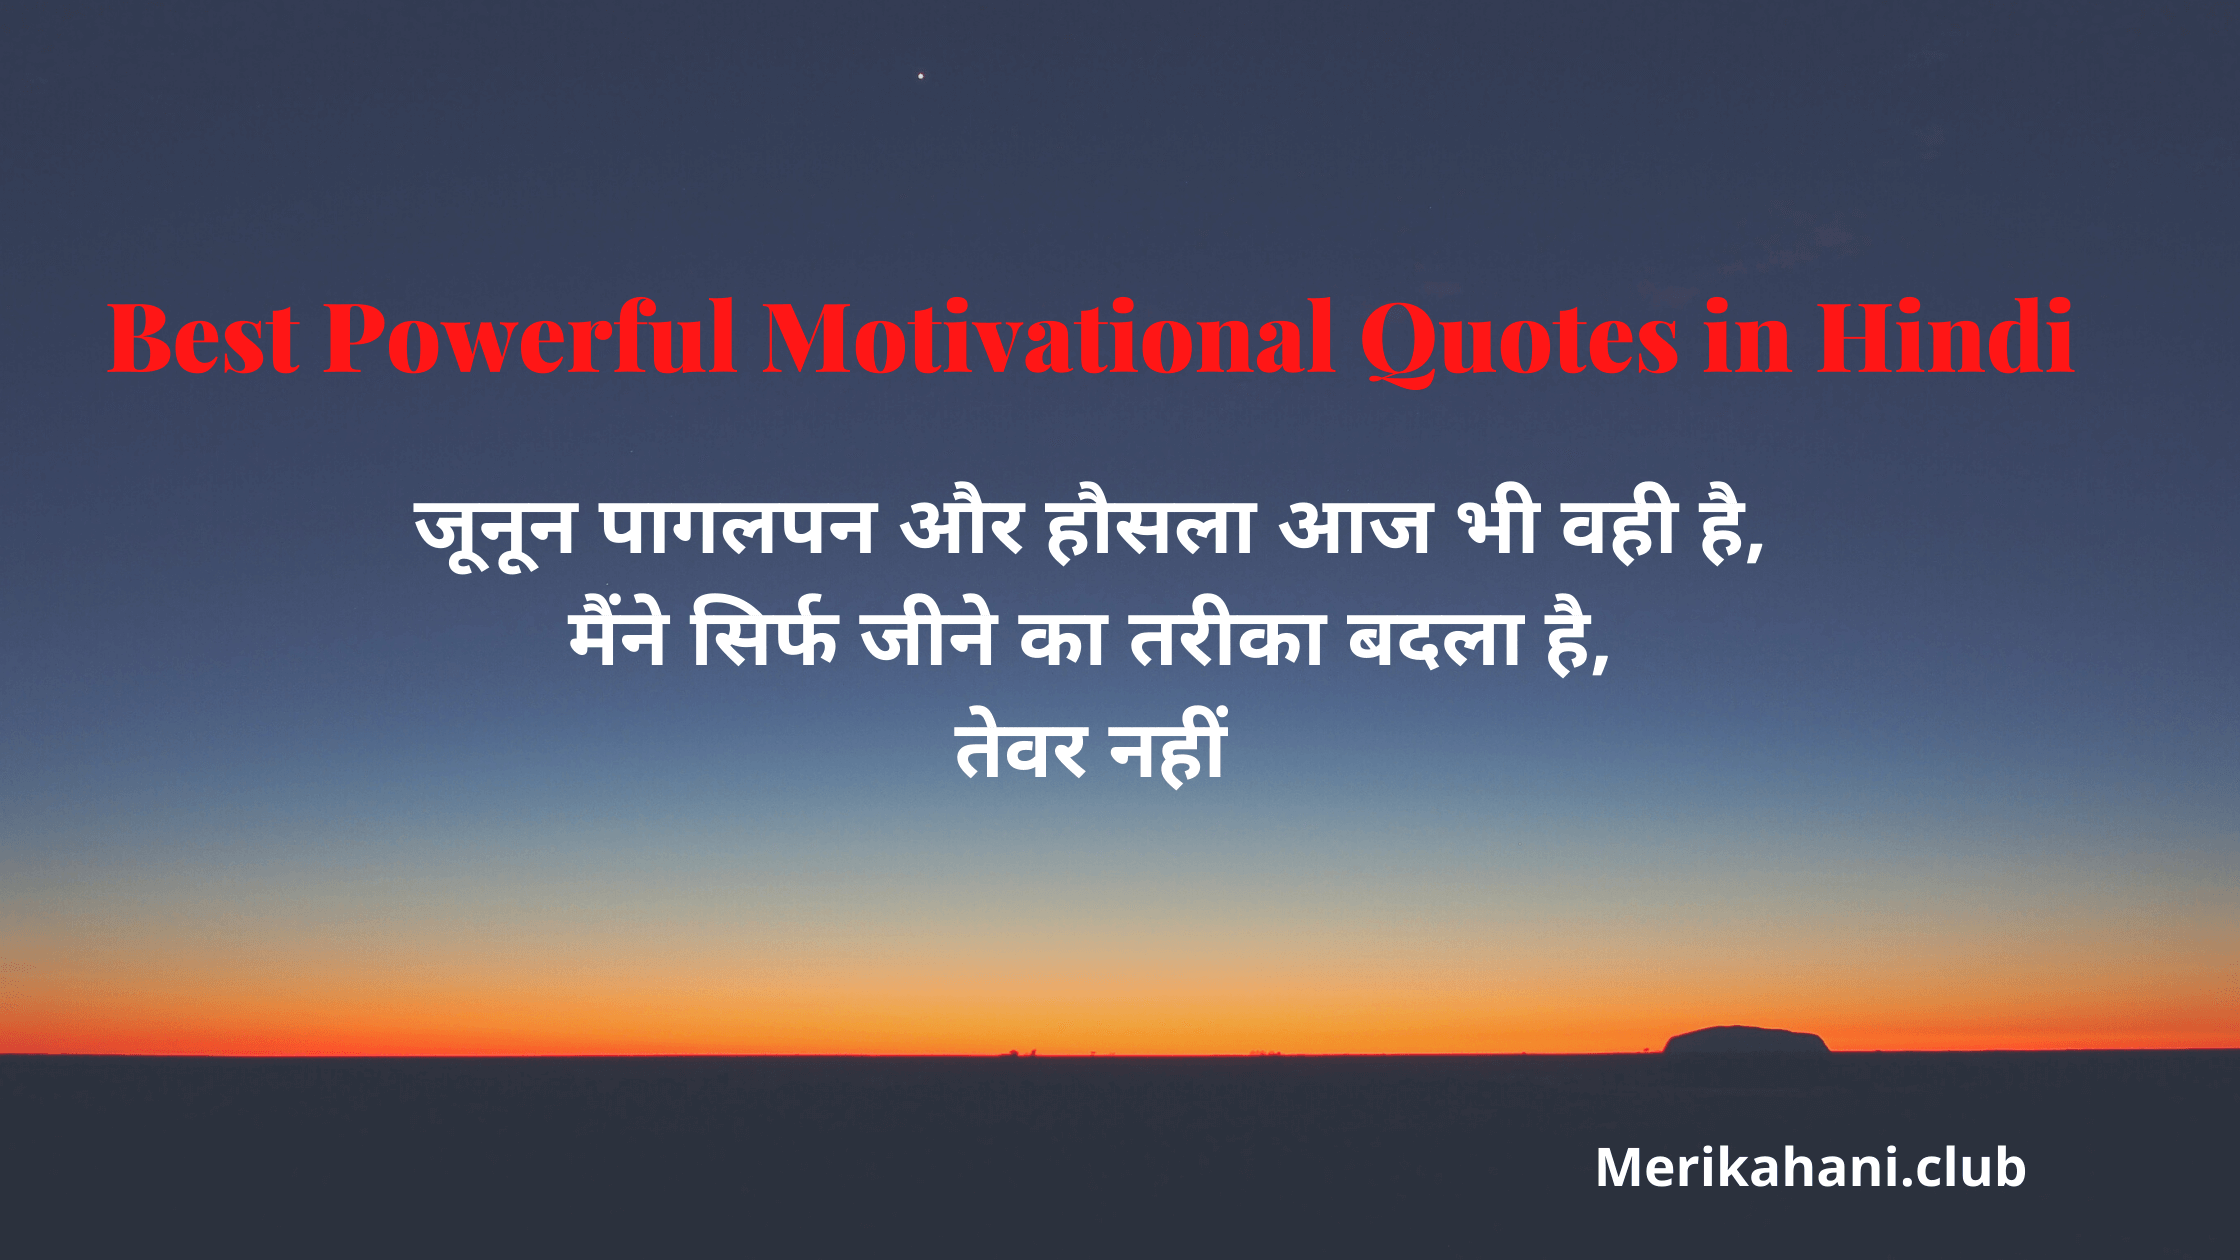 Best Powerful Motivational Quotes in Hindi